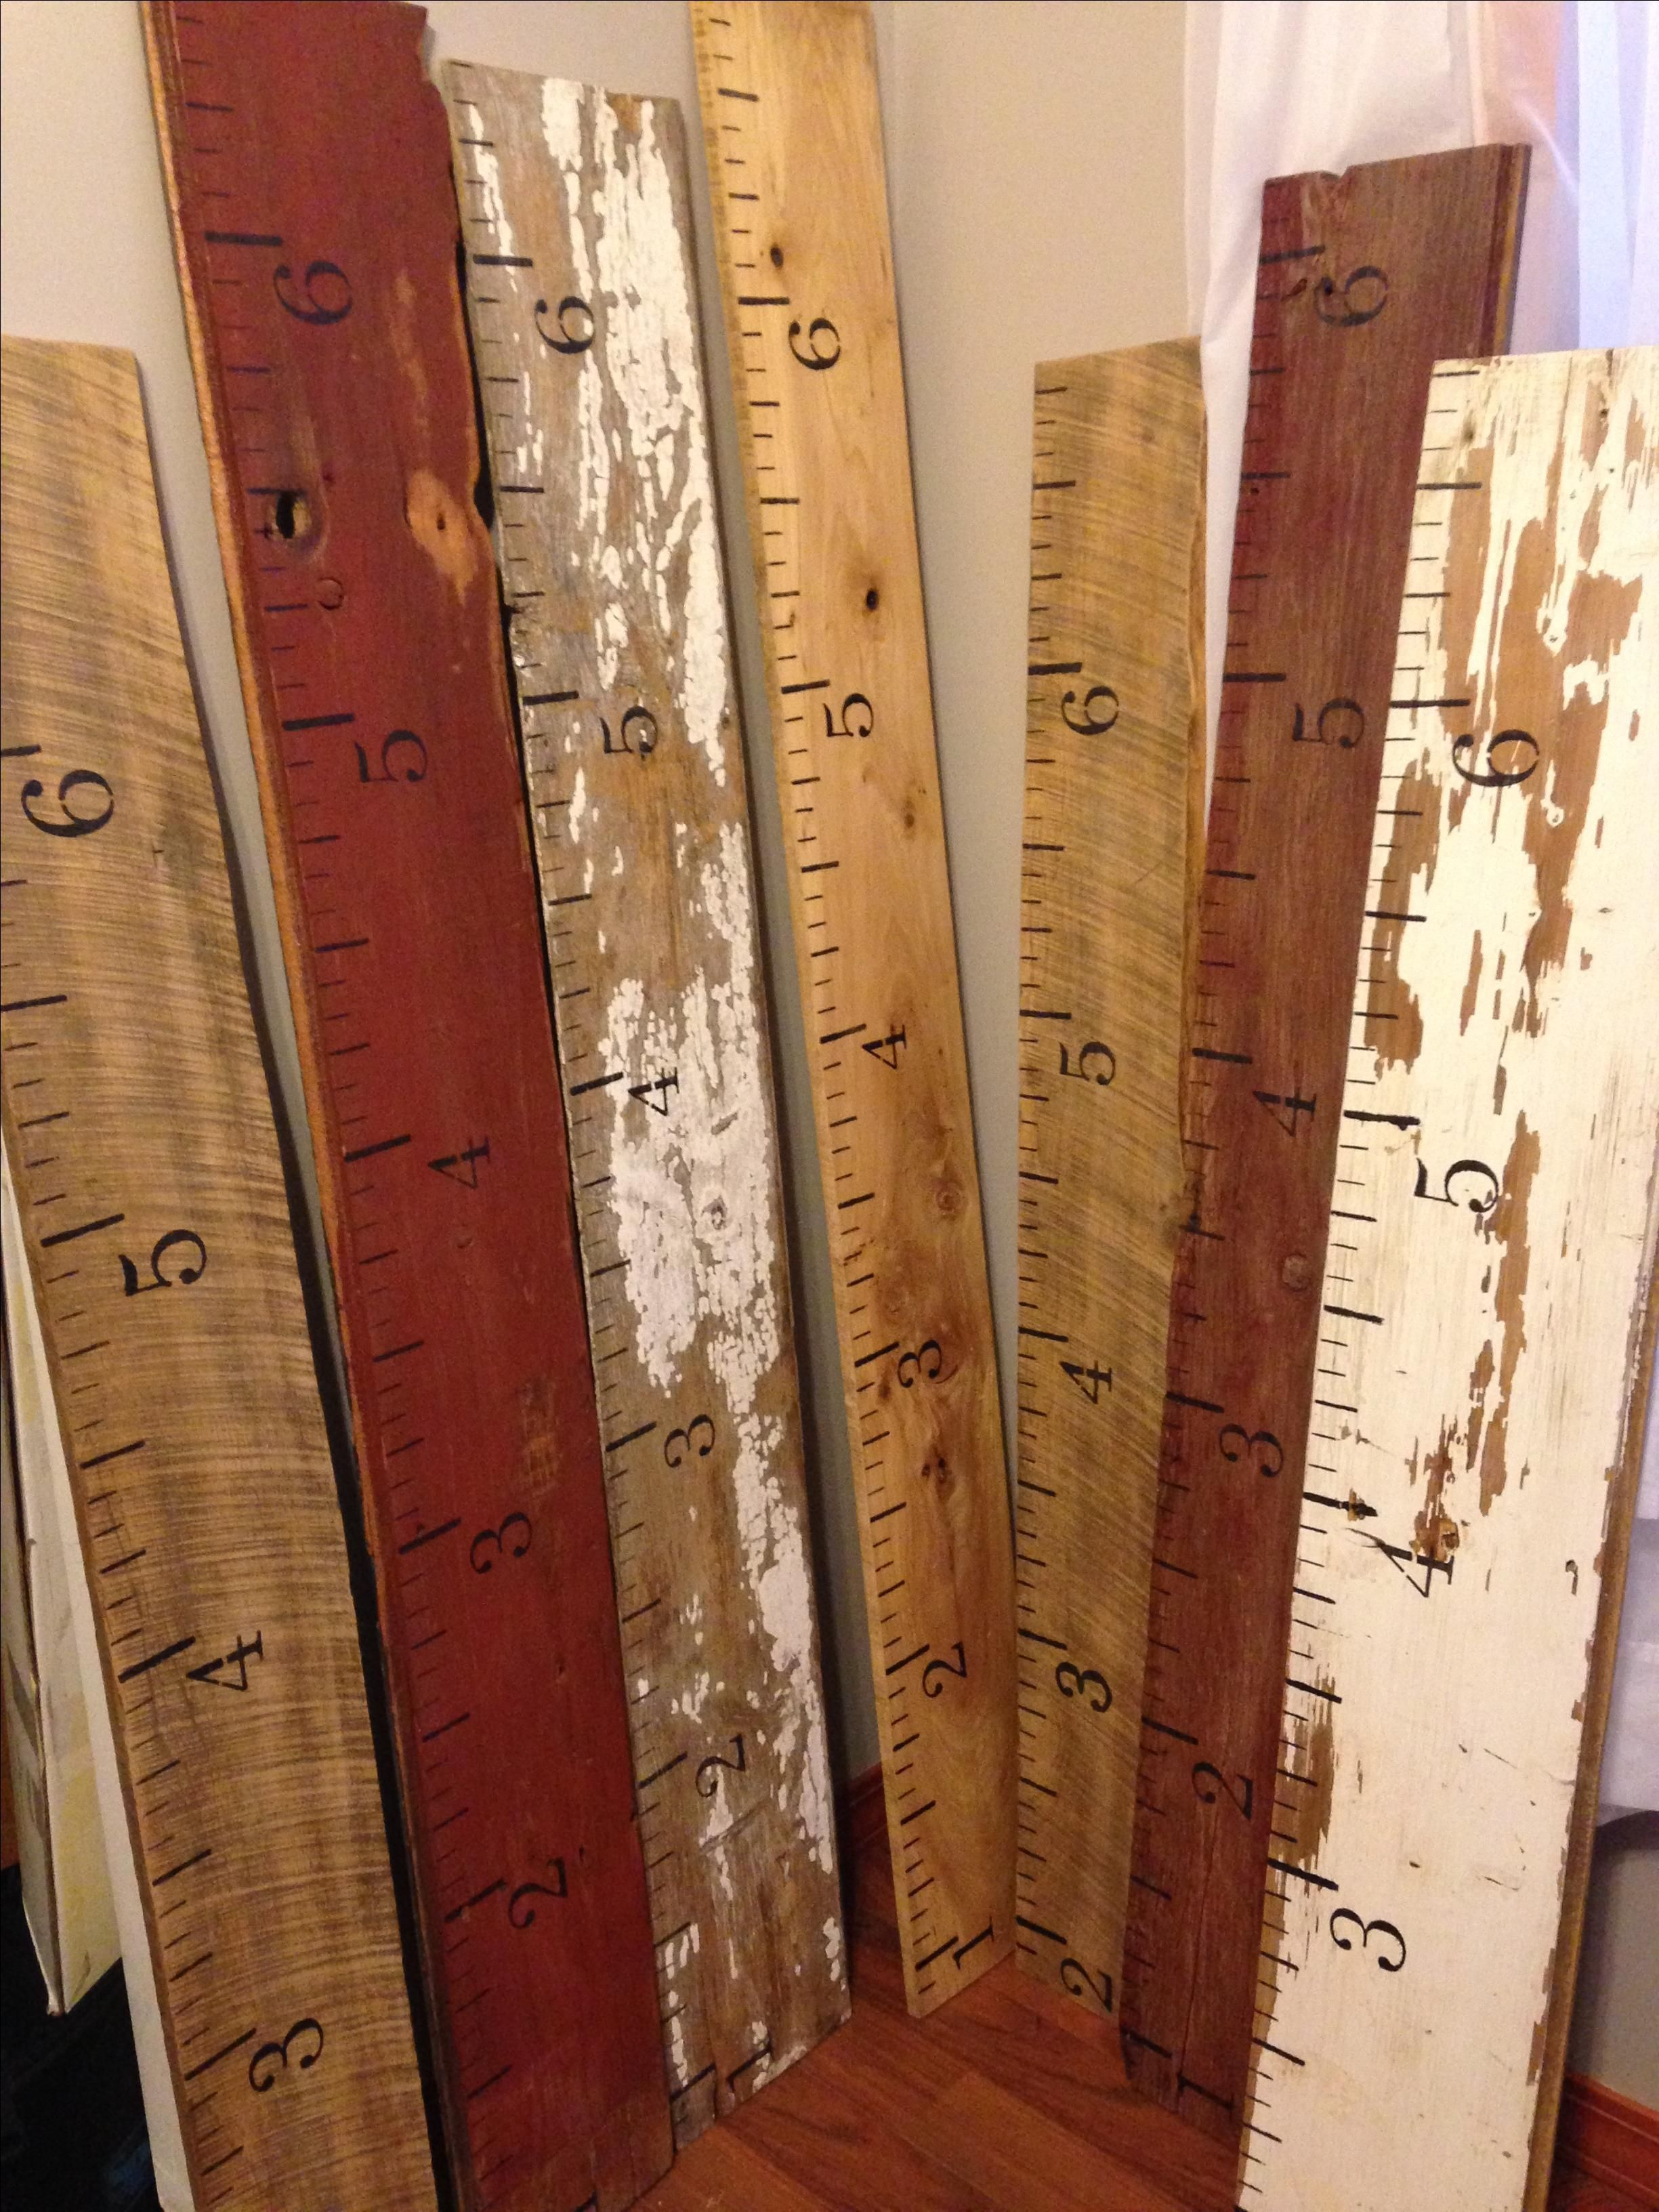 Hand crafted growth chart ruler yard stick salvaged barn wood custom made growth chart ruler yard stick salvaged barn wood siding lumber geenschuldenfo Choice Image